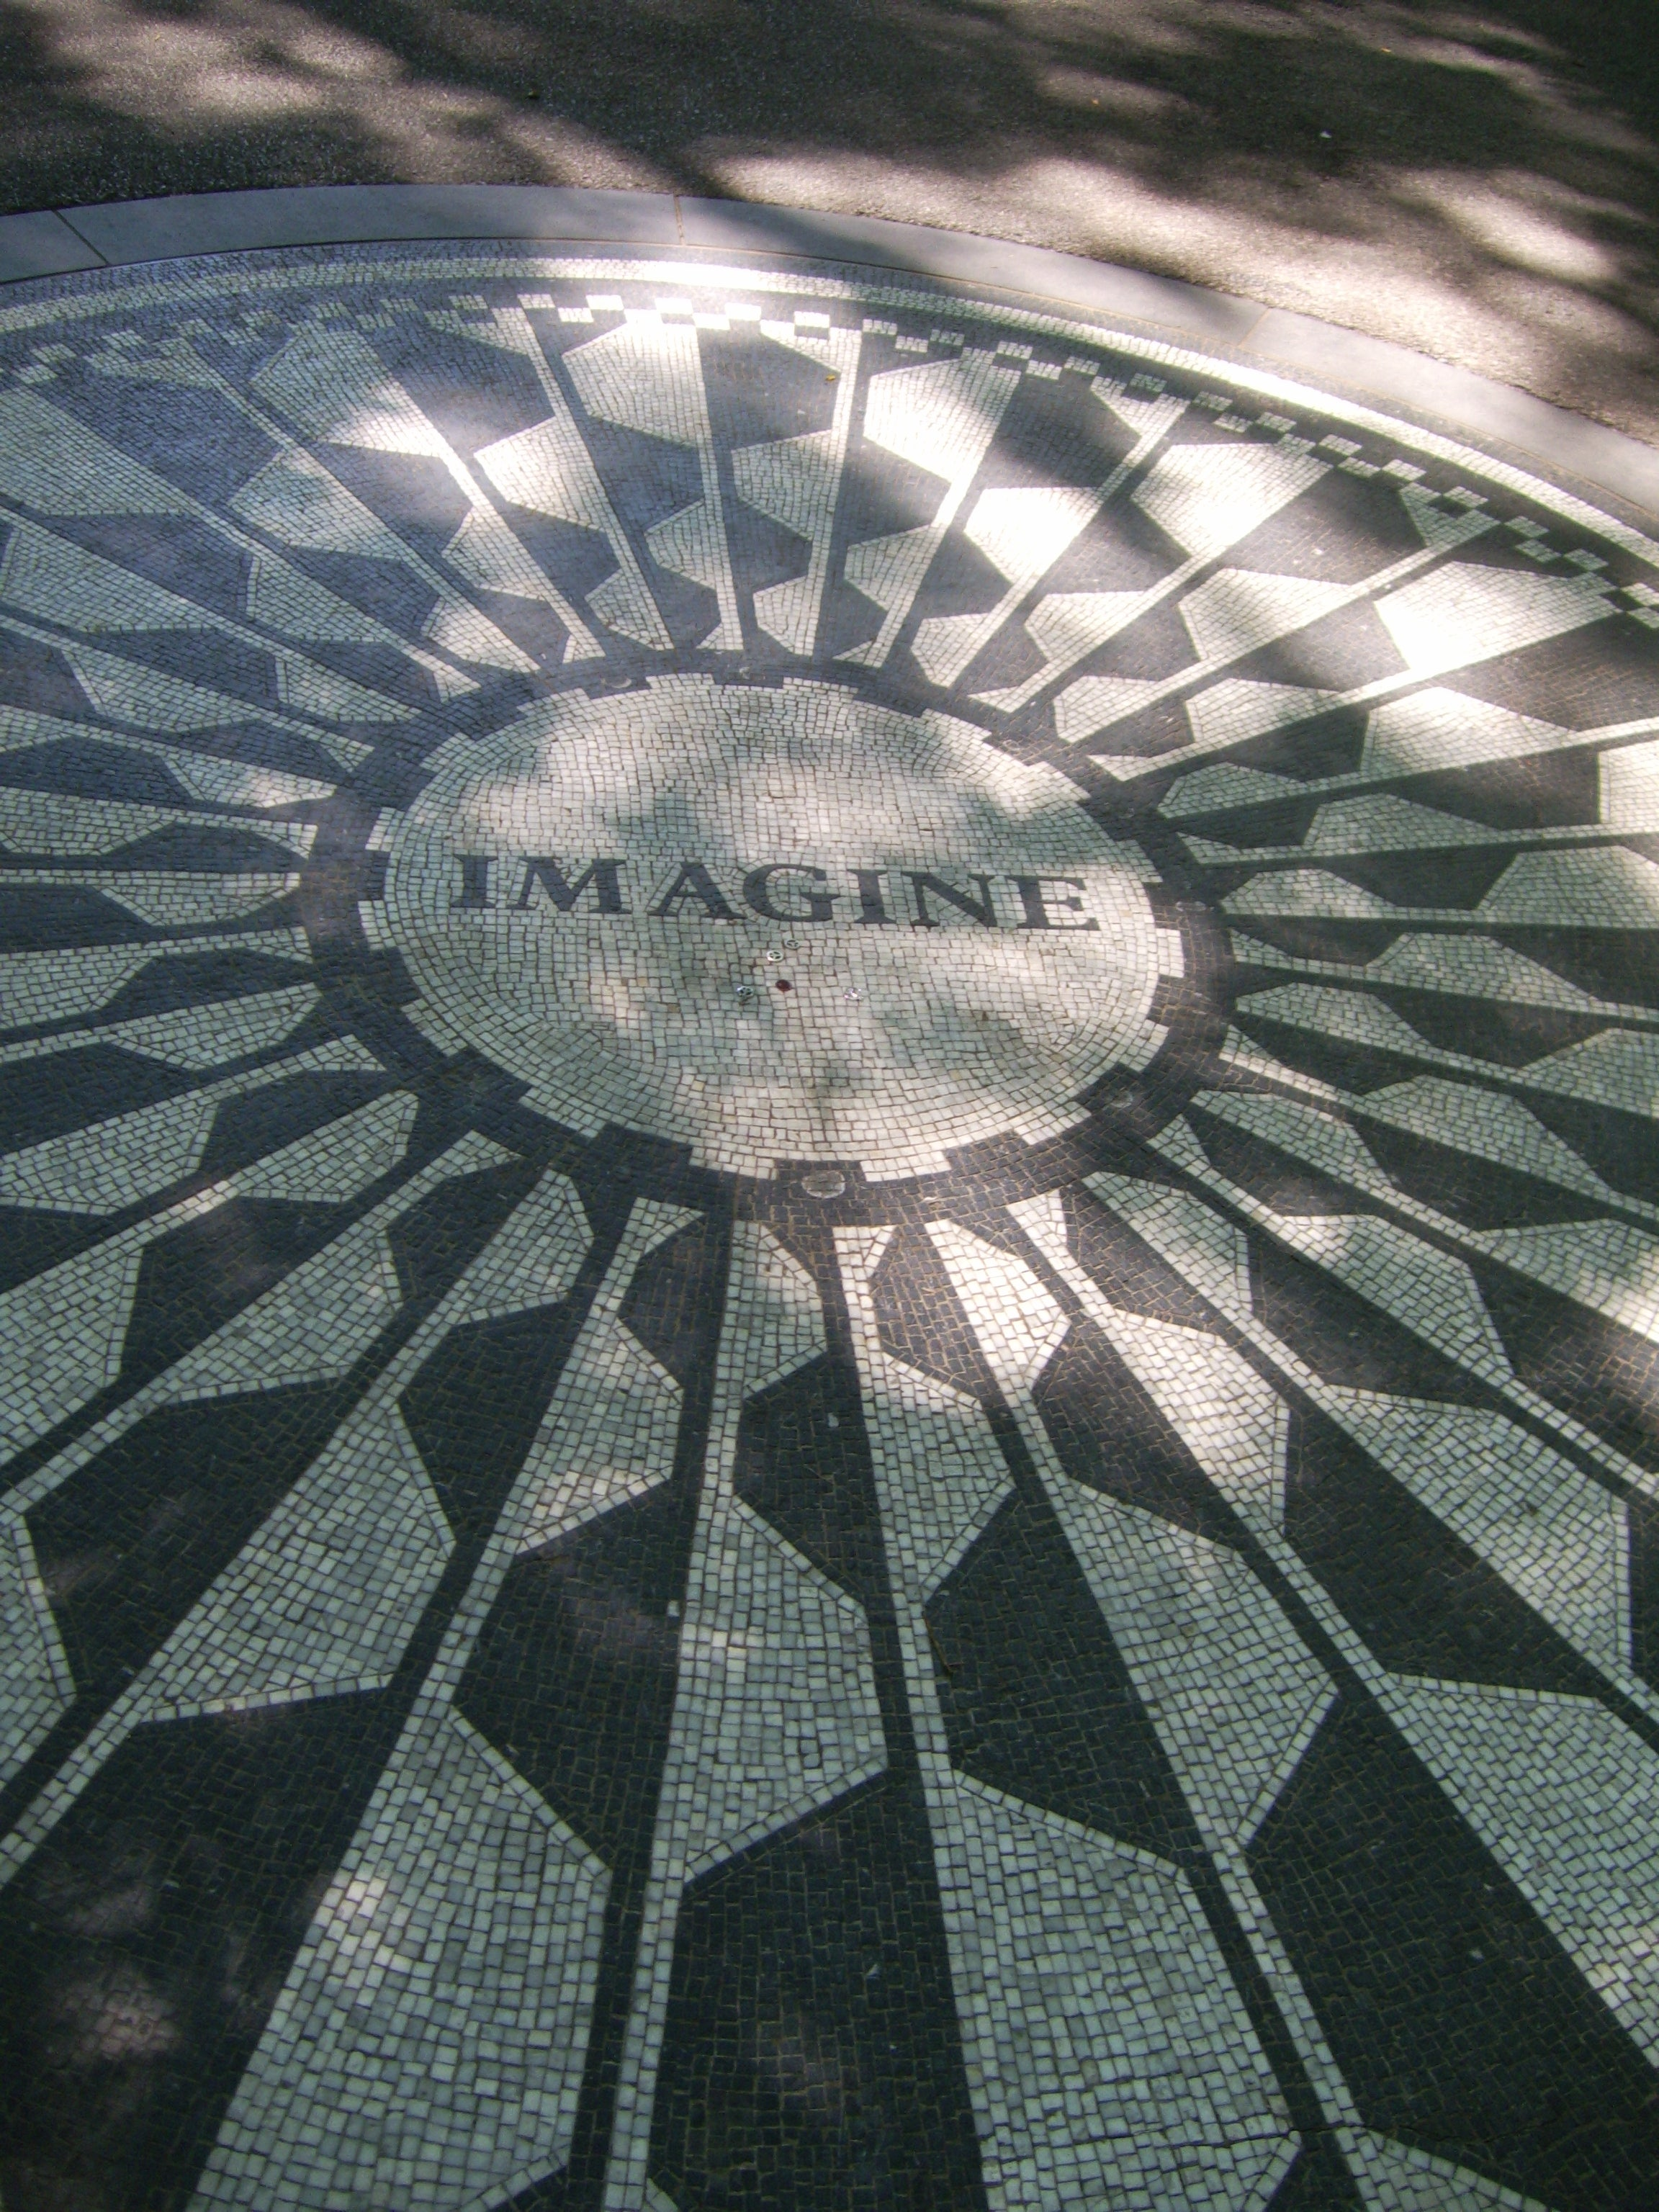 Reflejo en Strawberry Fields - monumento a John Lennon